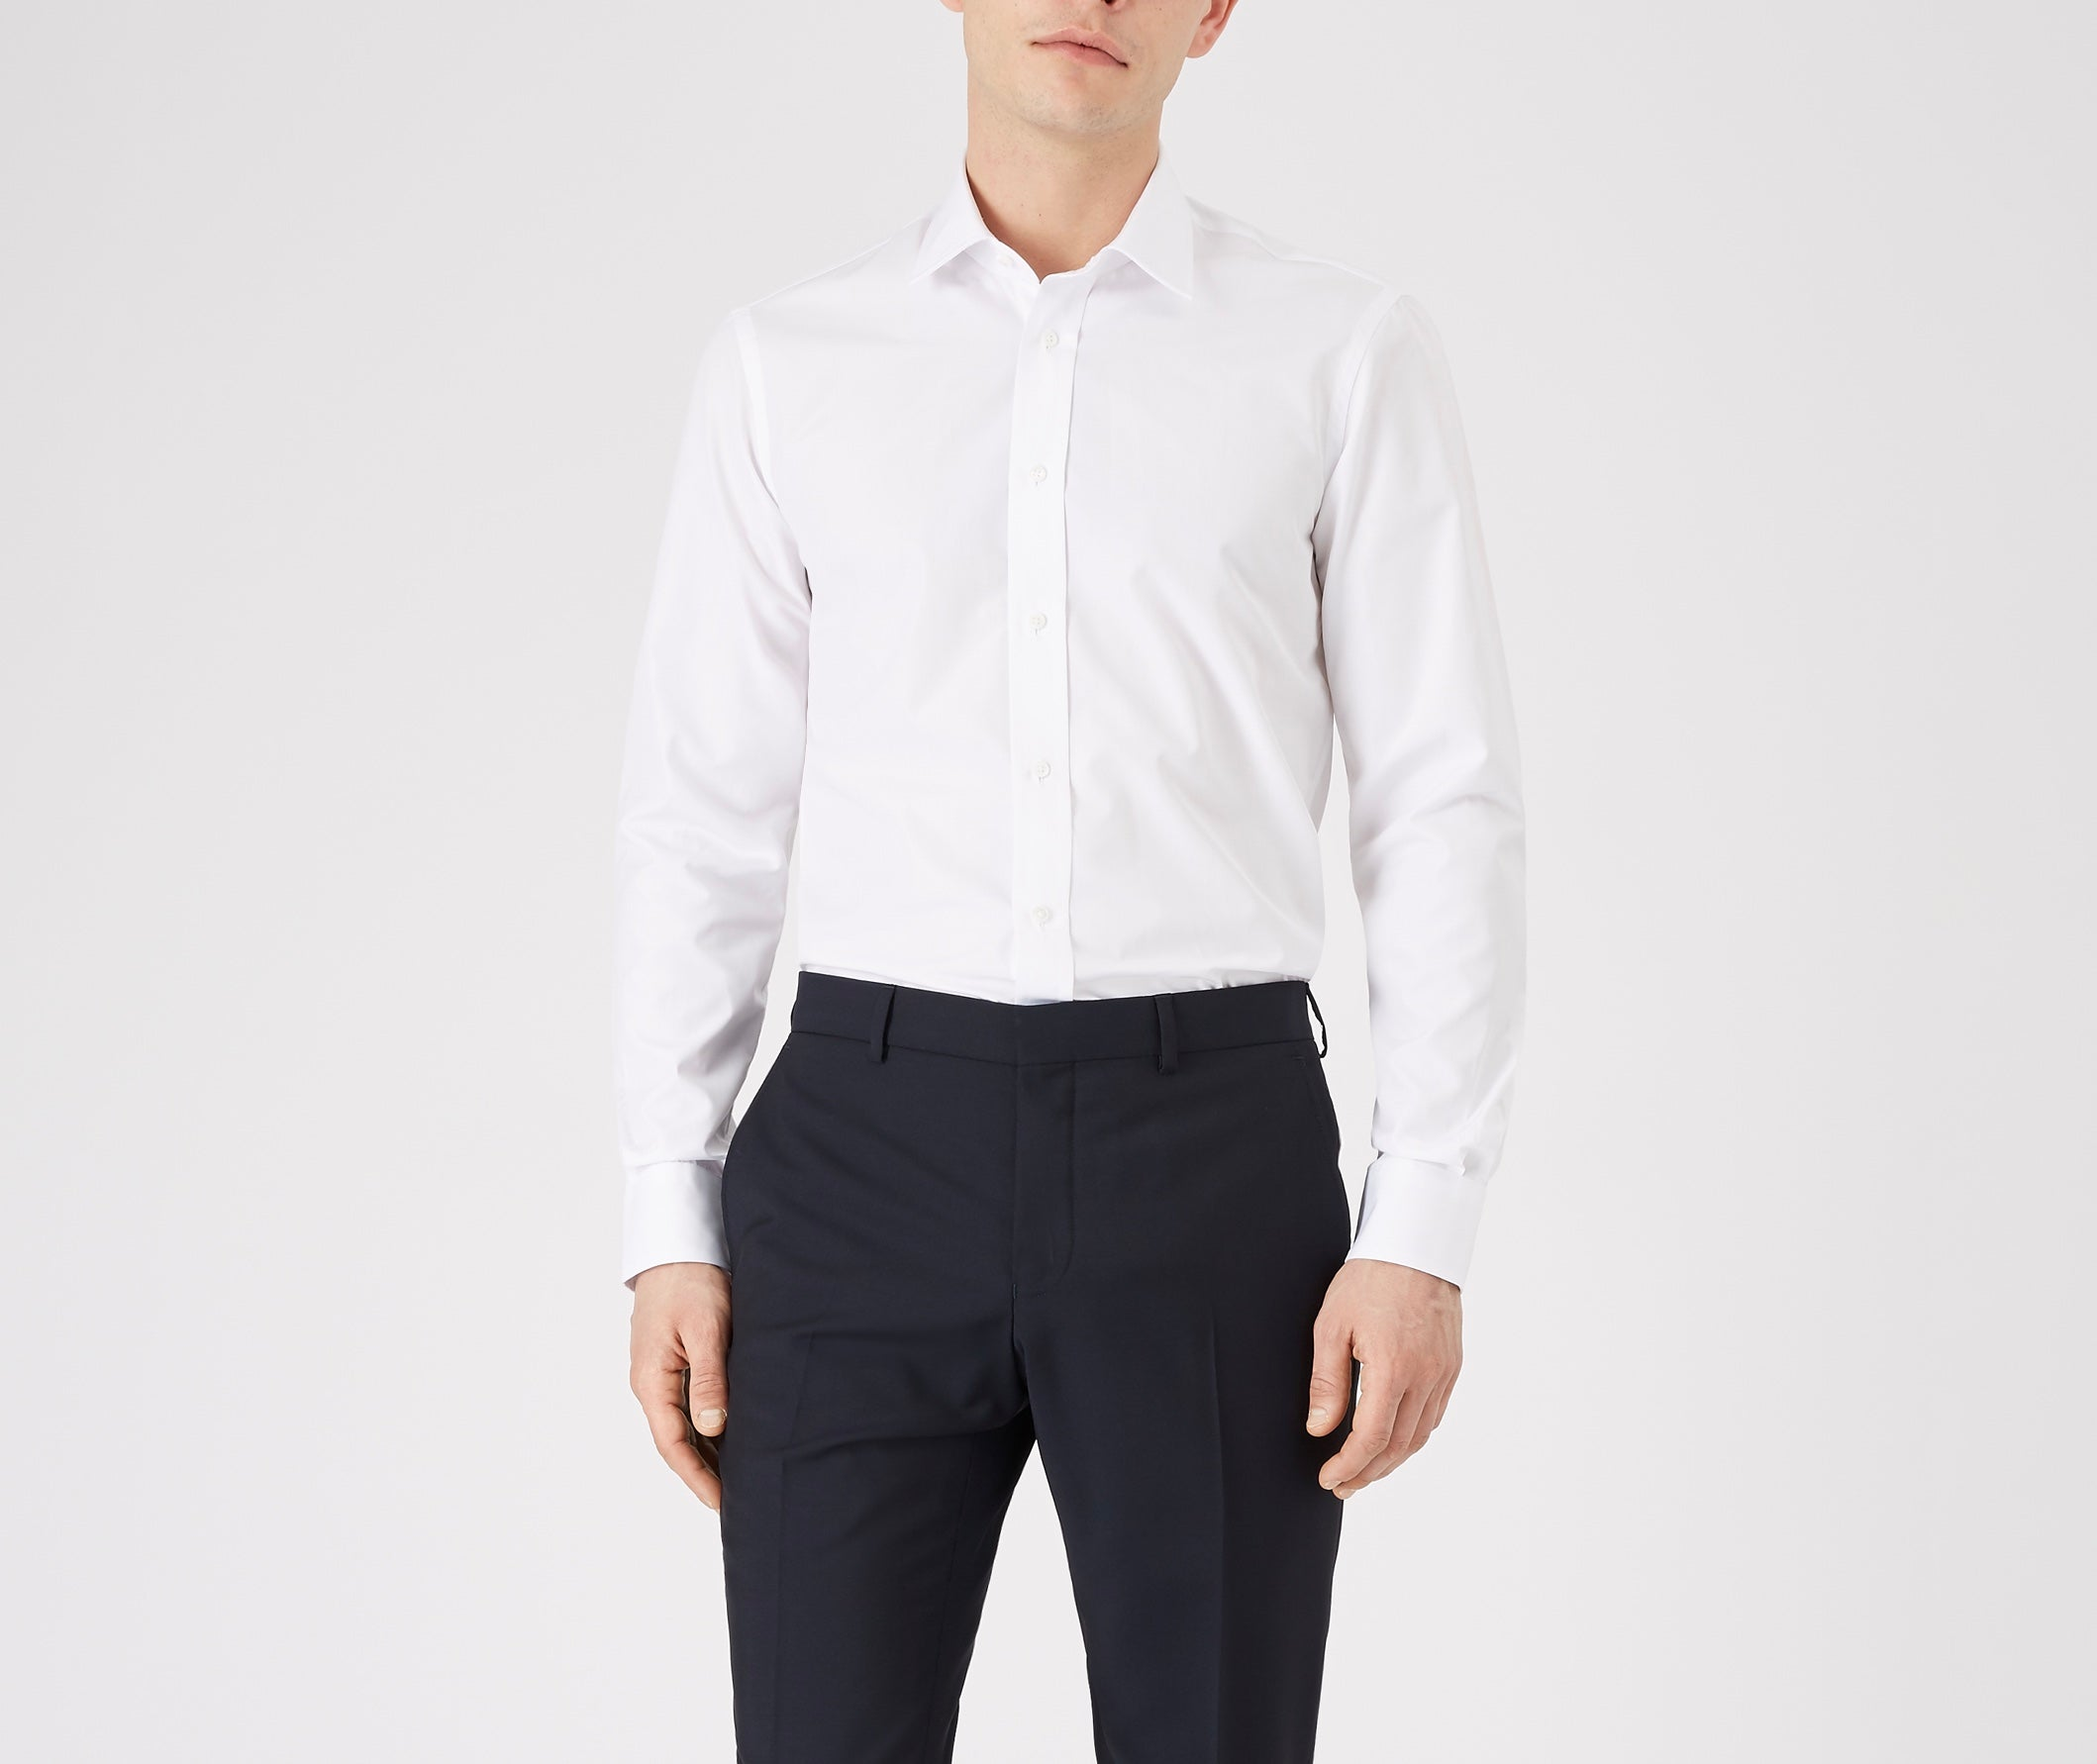 The ritz Slim Fit Shirt, with a mitred cuff and topstitched collar detail in beautiful Italian cloth, with a luxurious texture and appearance, from Mr. Start Shoreditch. Mens Slim fit shirt